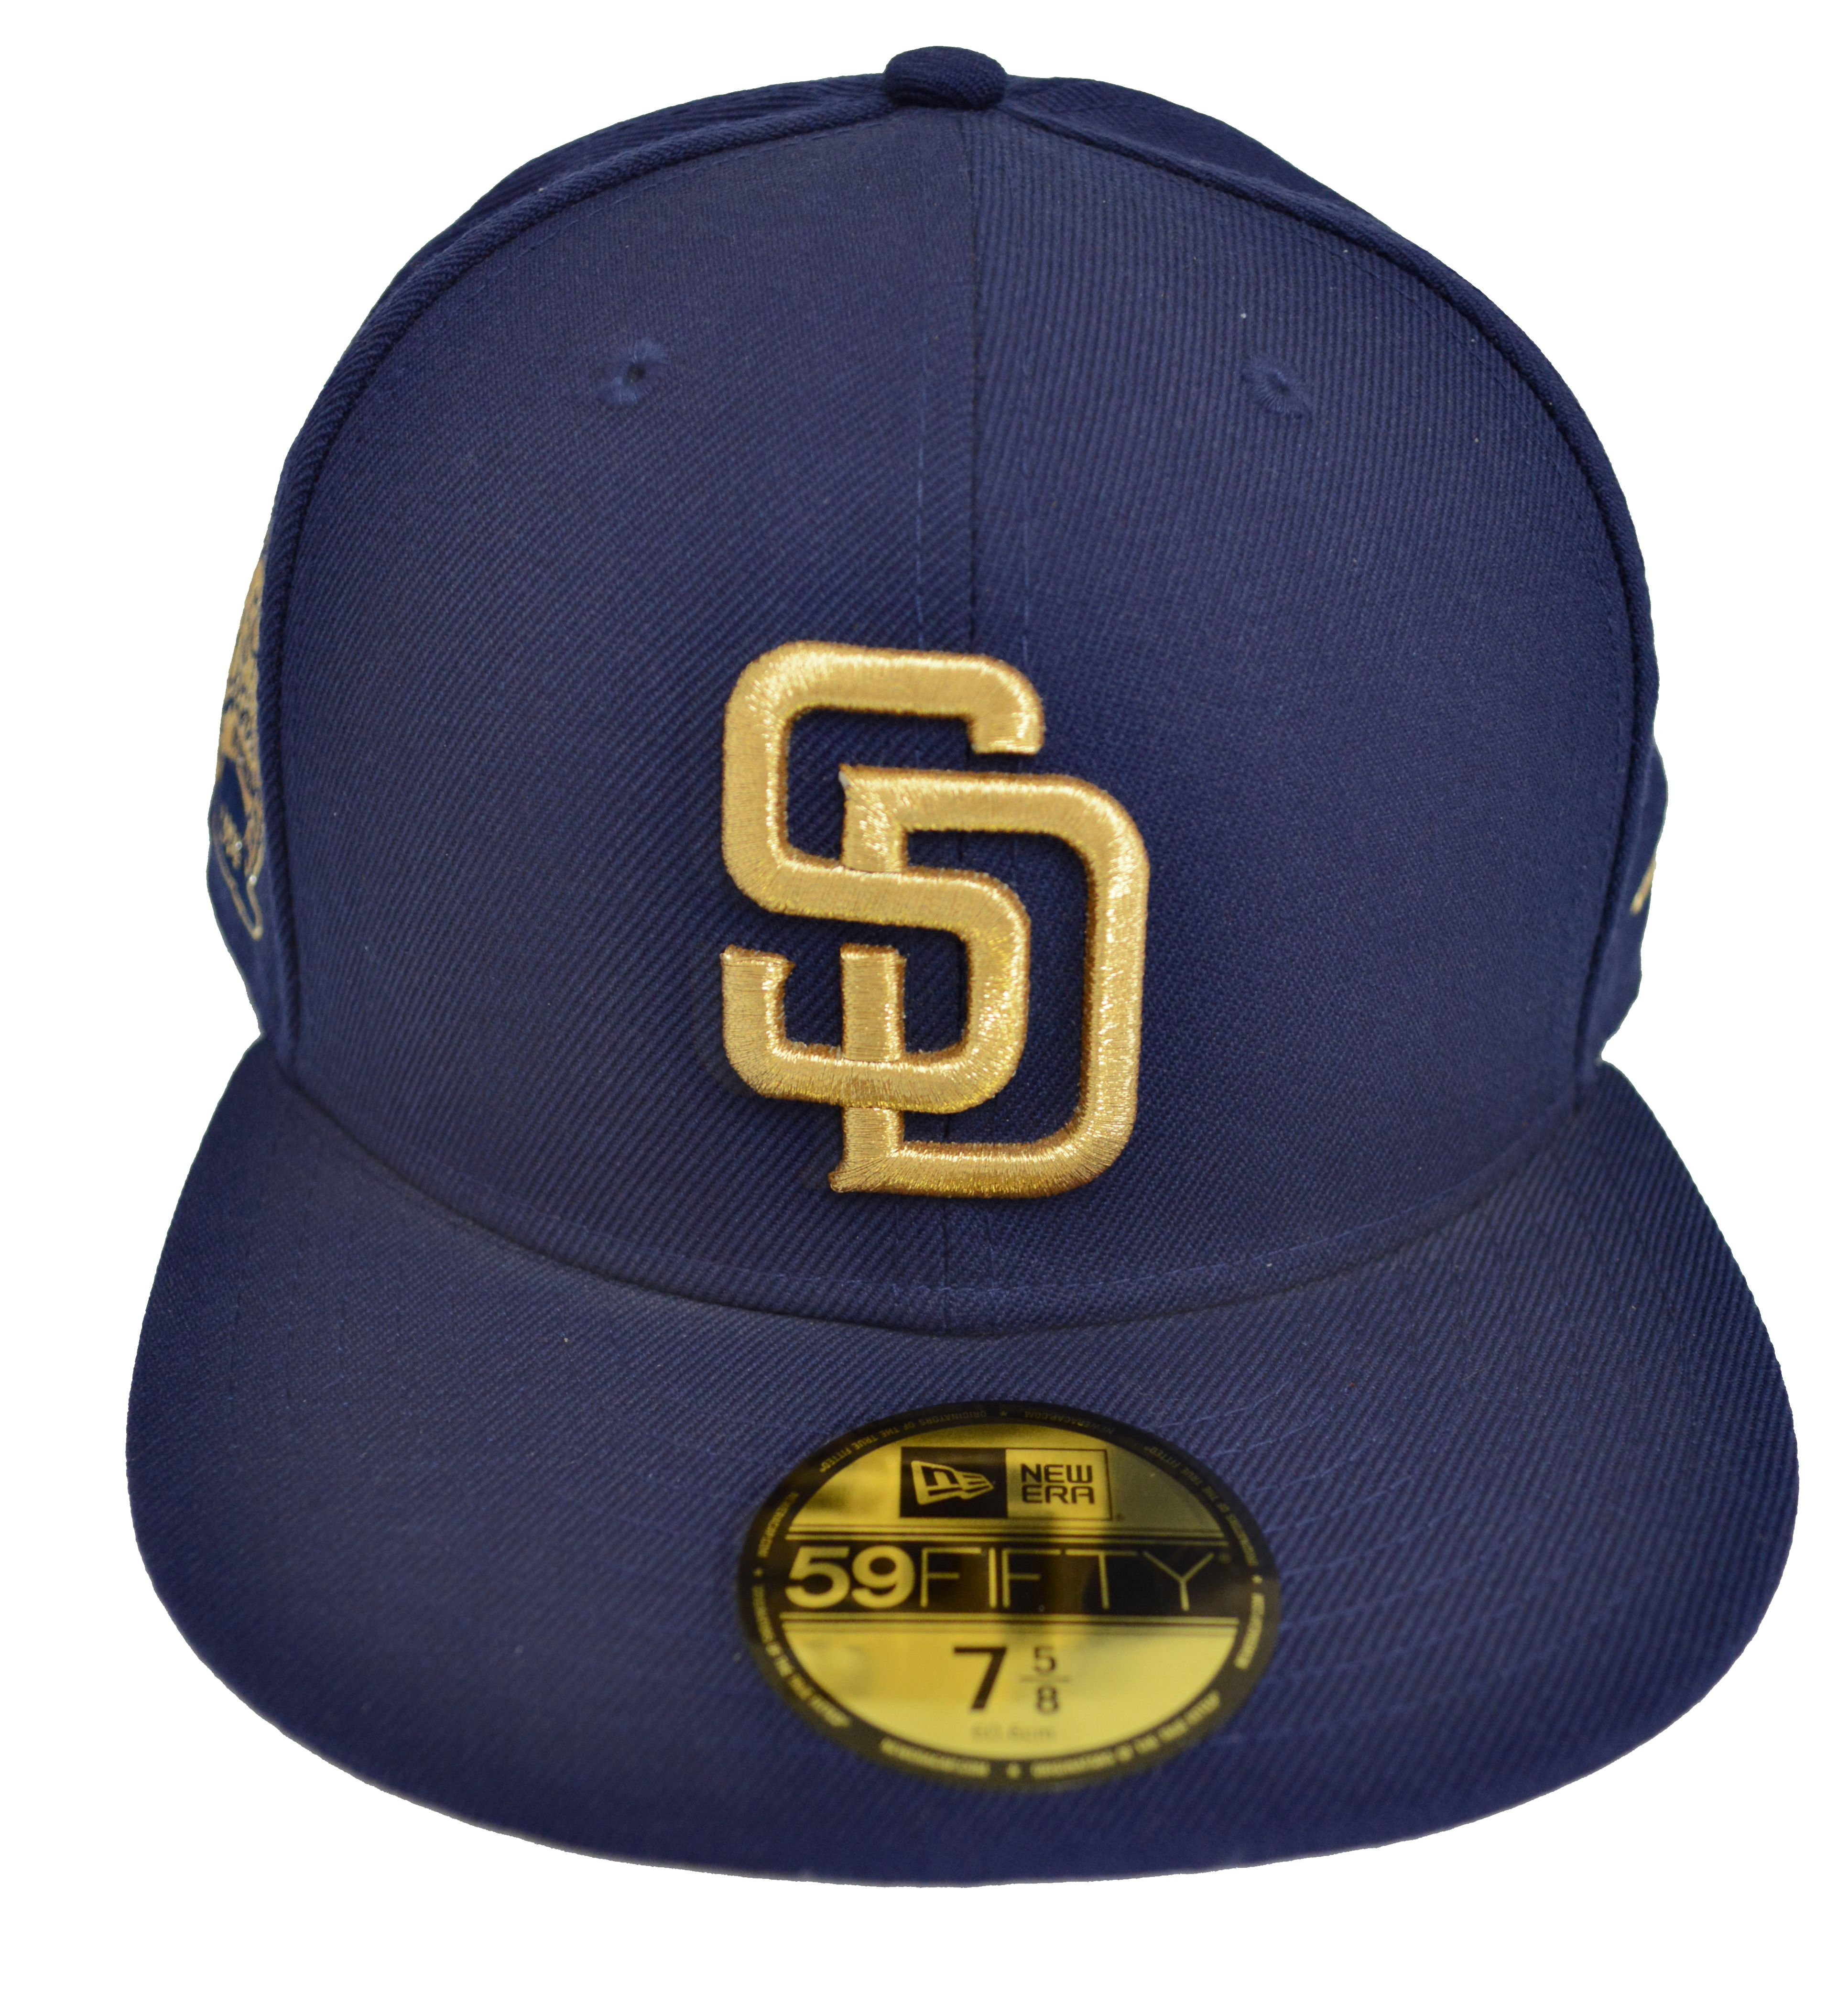 5cbea46add4cf Gorras Originales New Era Beisbol San Diego Padres 59fifty -   569.00